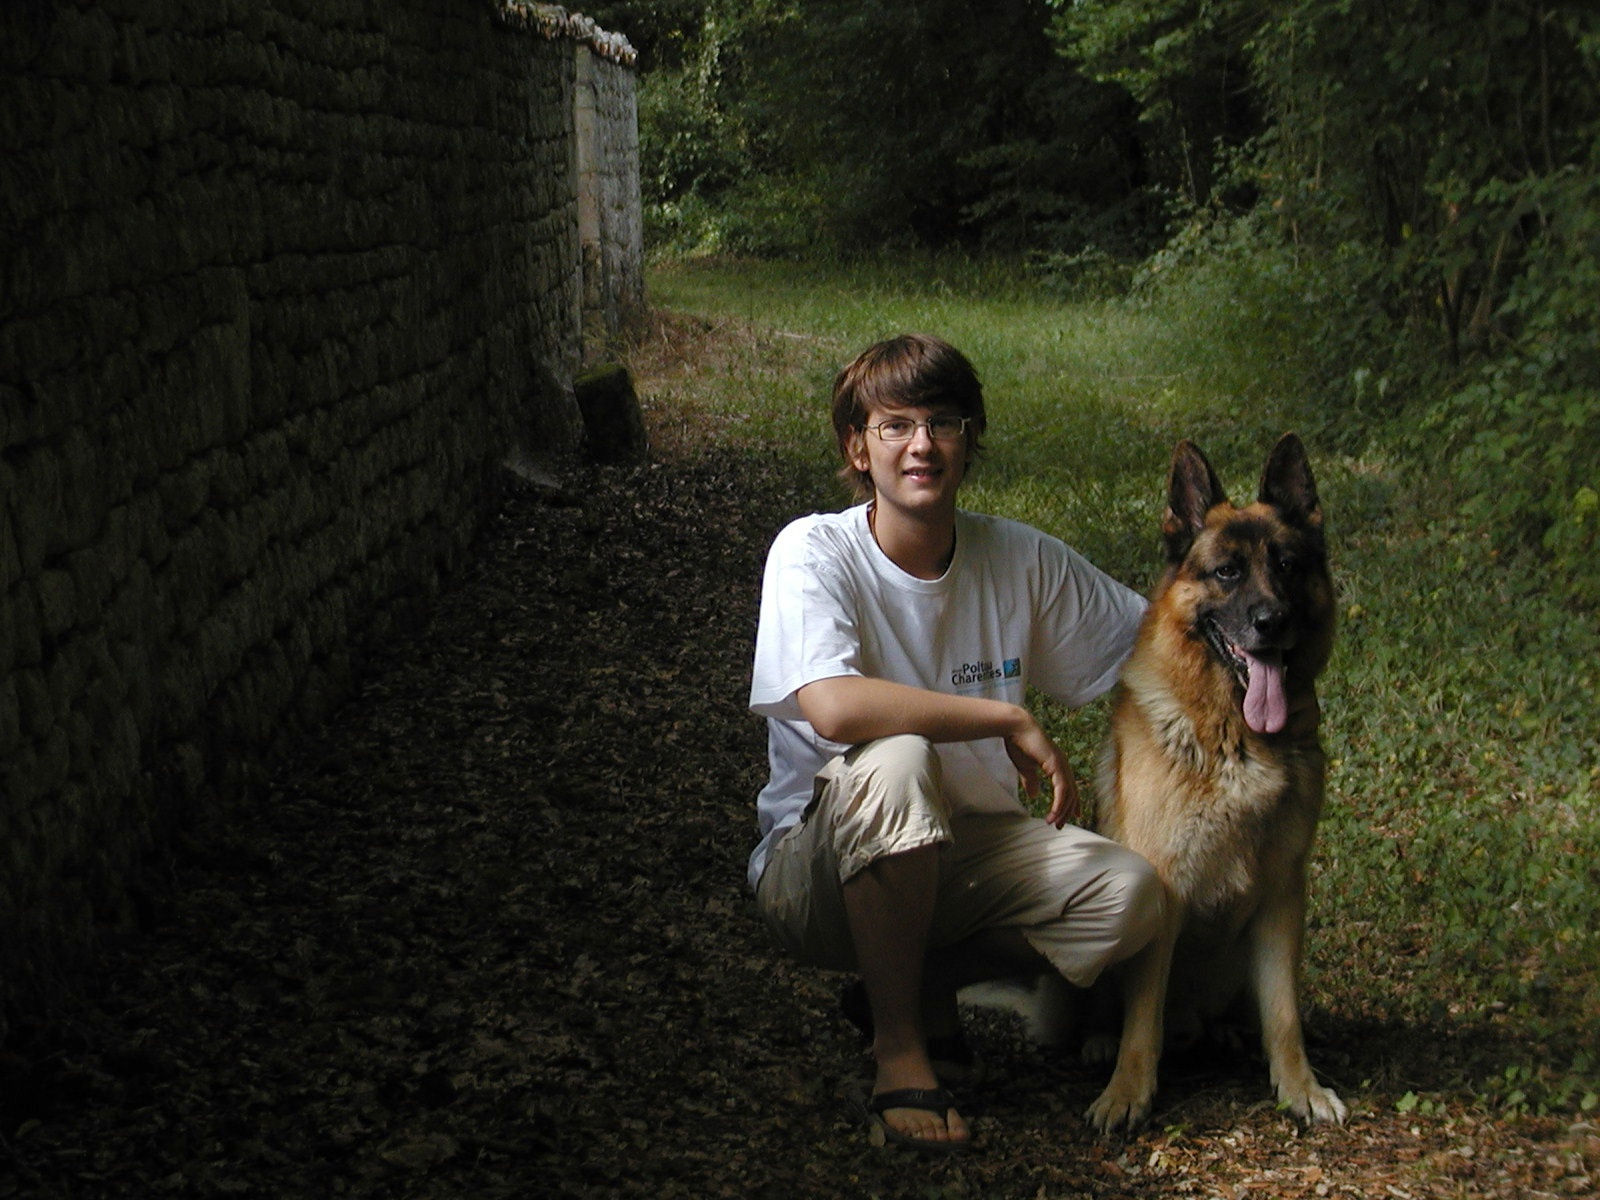 a boy and his dog author lucke charlie posed for